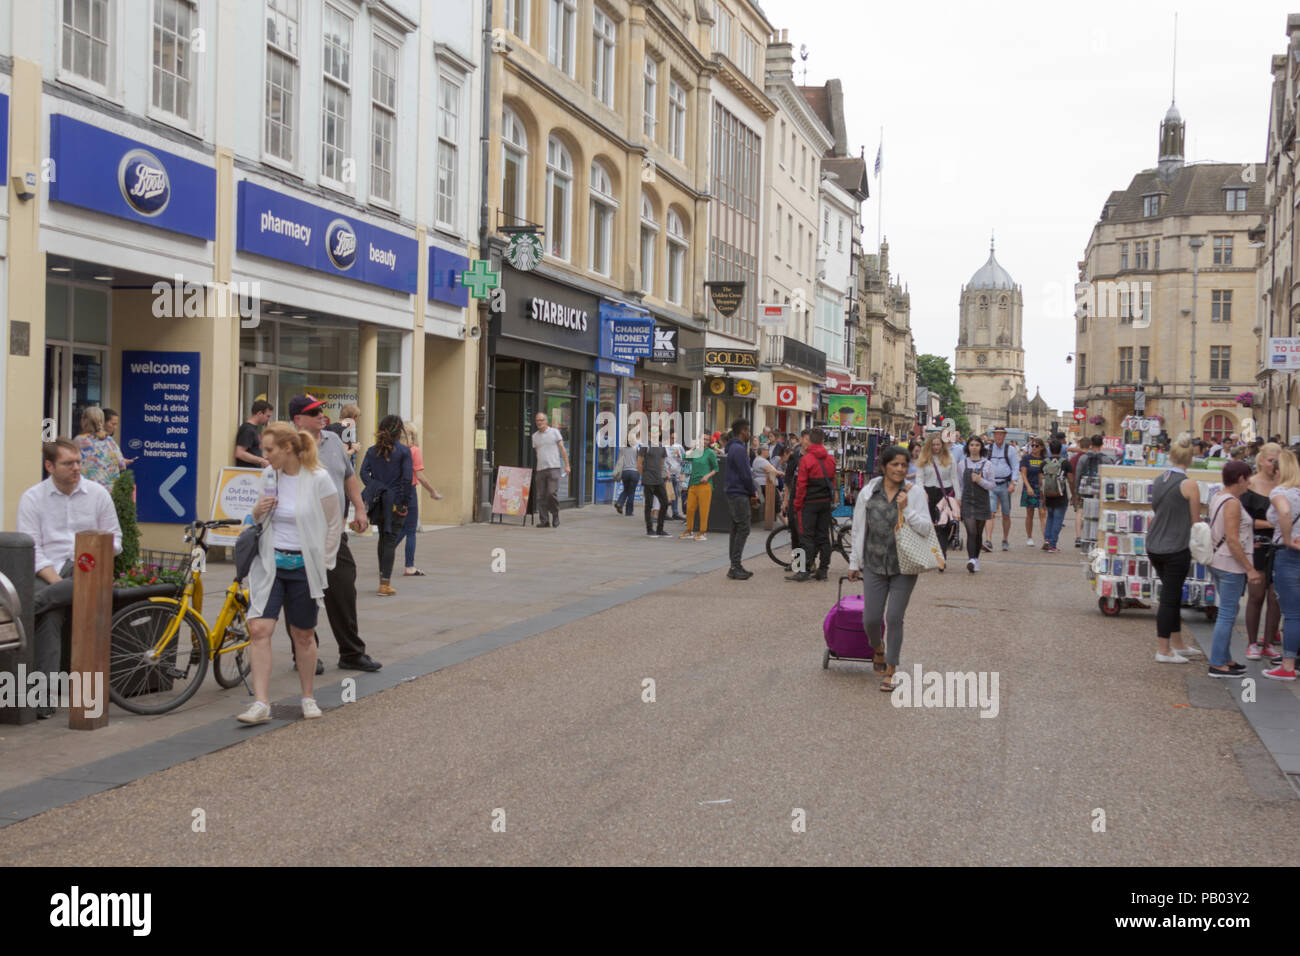 Oxford, Oxfordshire, UK. 23rd June 2018. UK Weather. Shoppers outside Boots in the sunshine and shopping in picturesque Oxford. - Stock Image